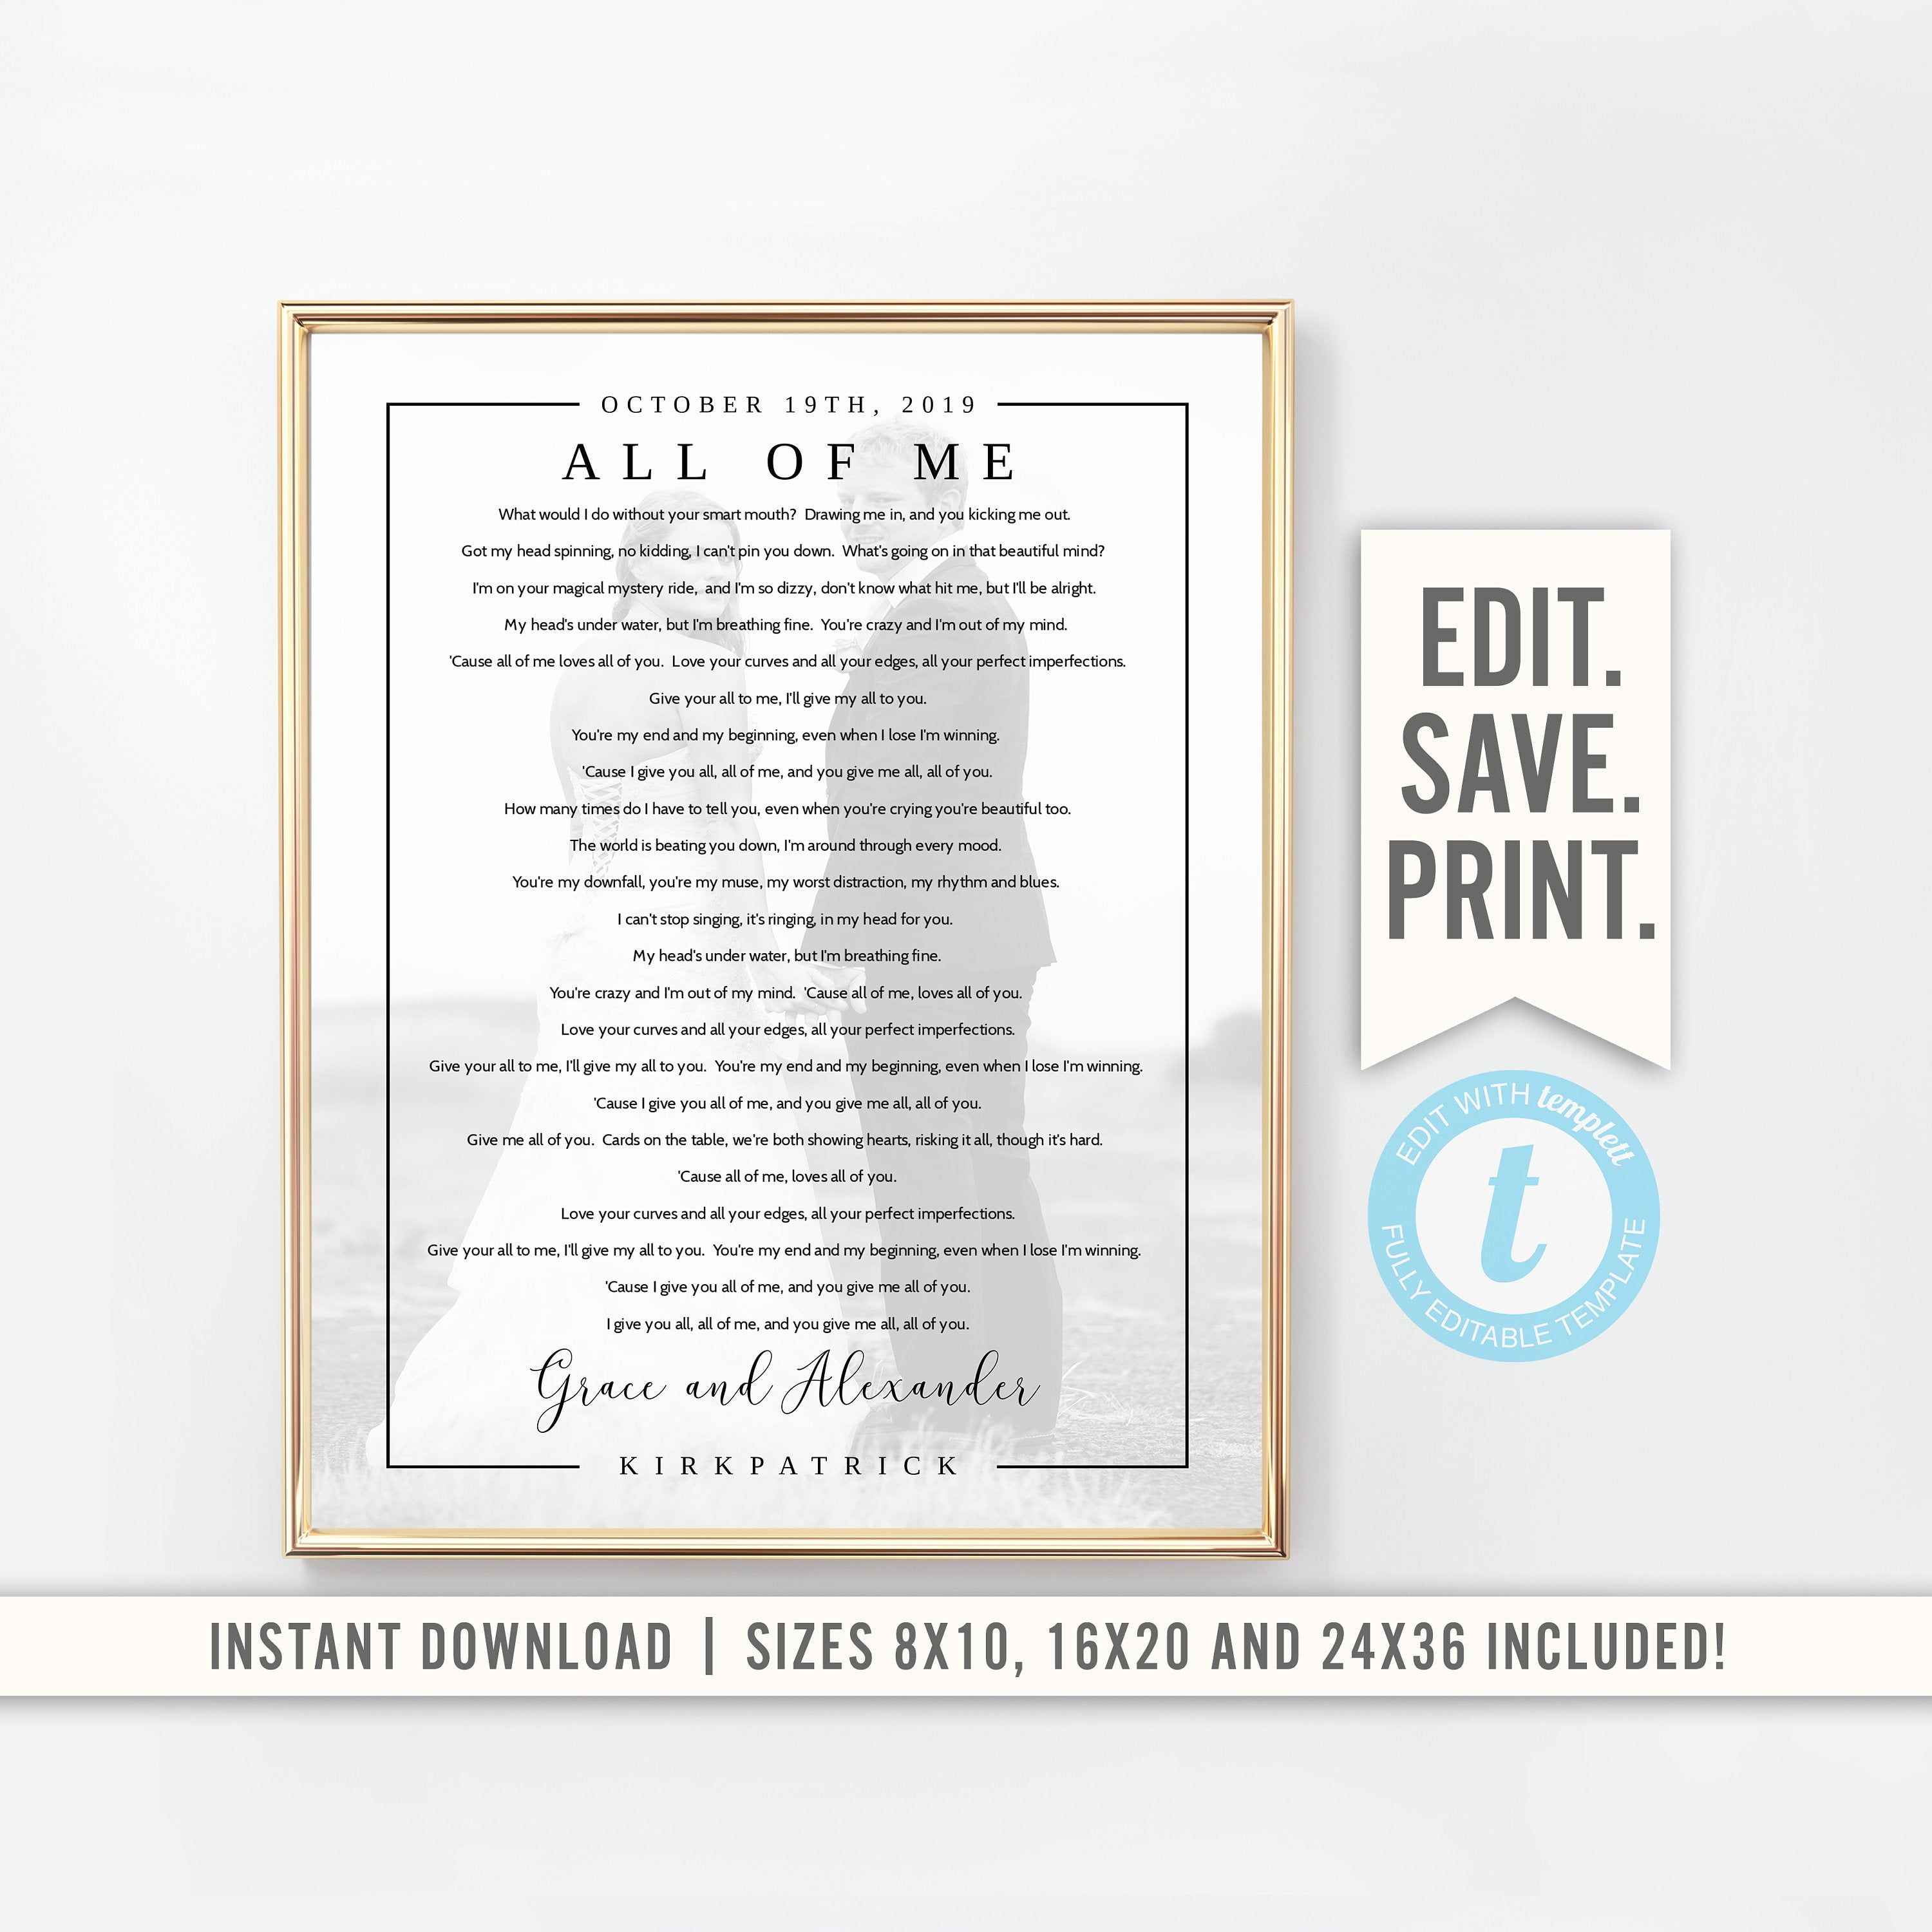 Wedding Song Lyrics With Photo Instant Download Editable File Etsy Wedding Song Lyrics Wedding Songs Songs